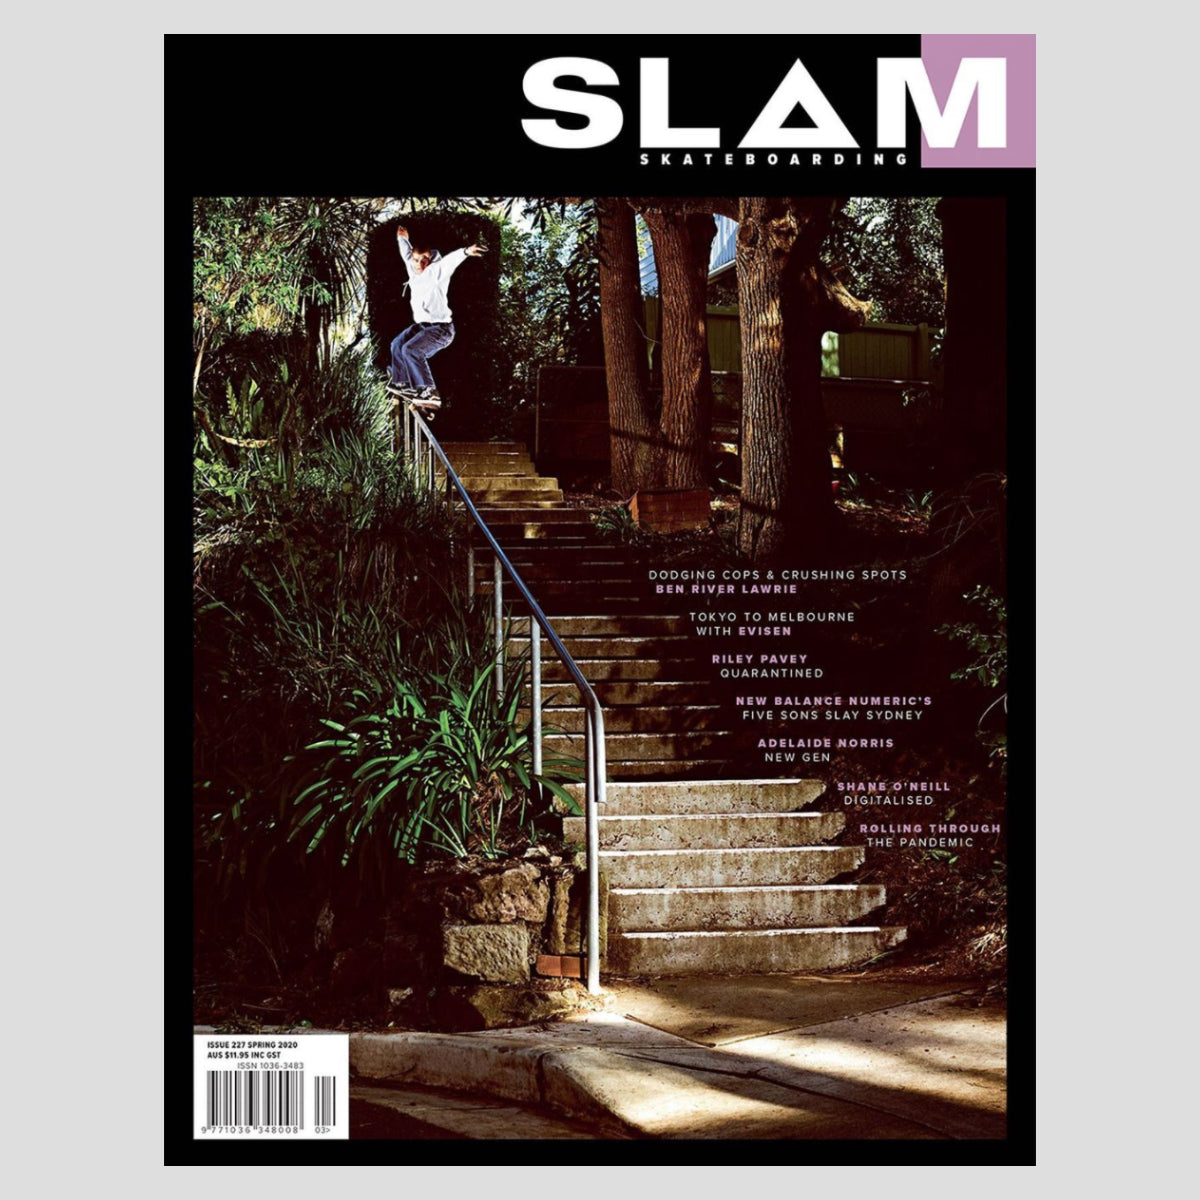 Slam Skateboarding Issue #227